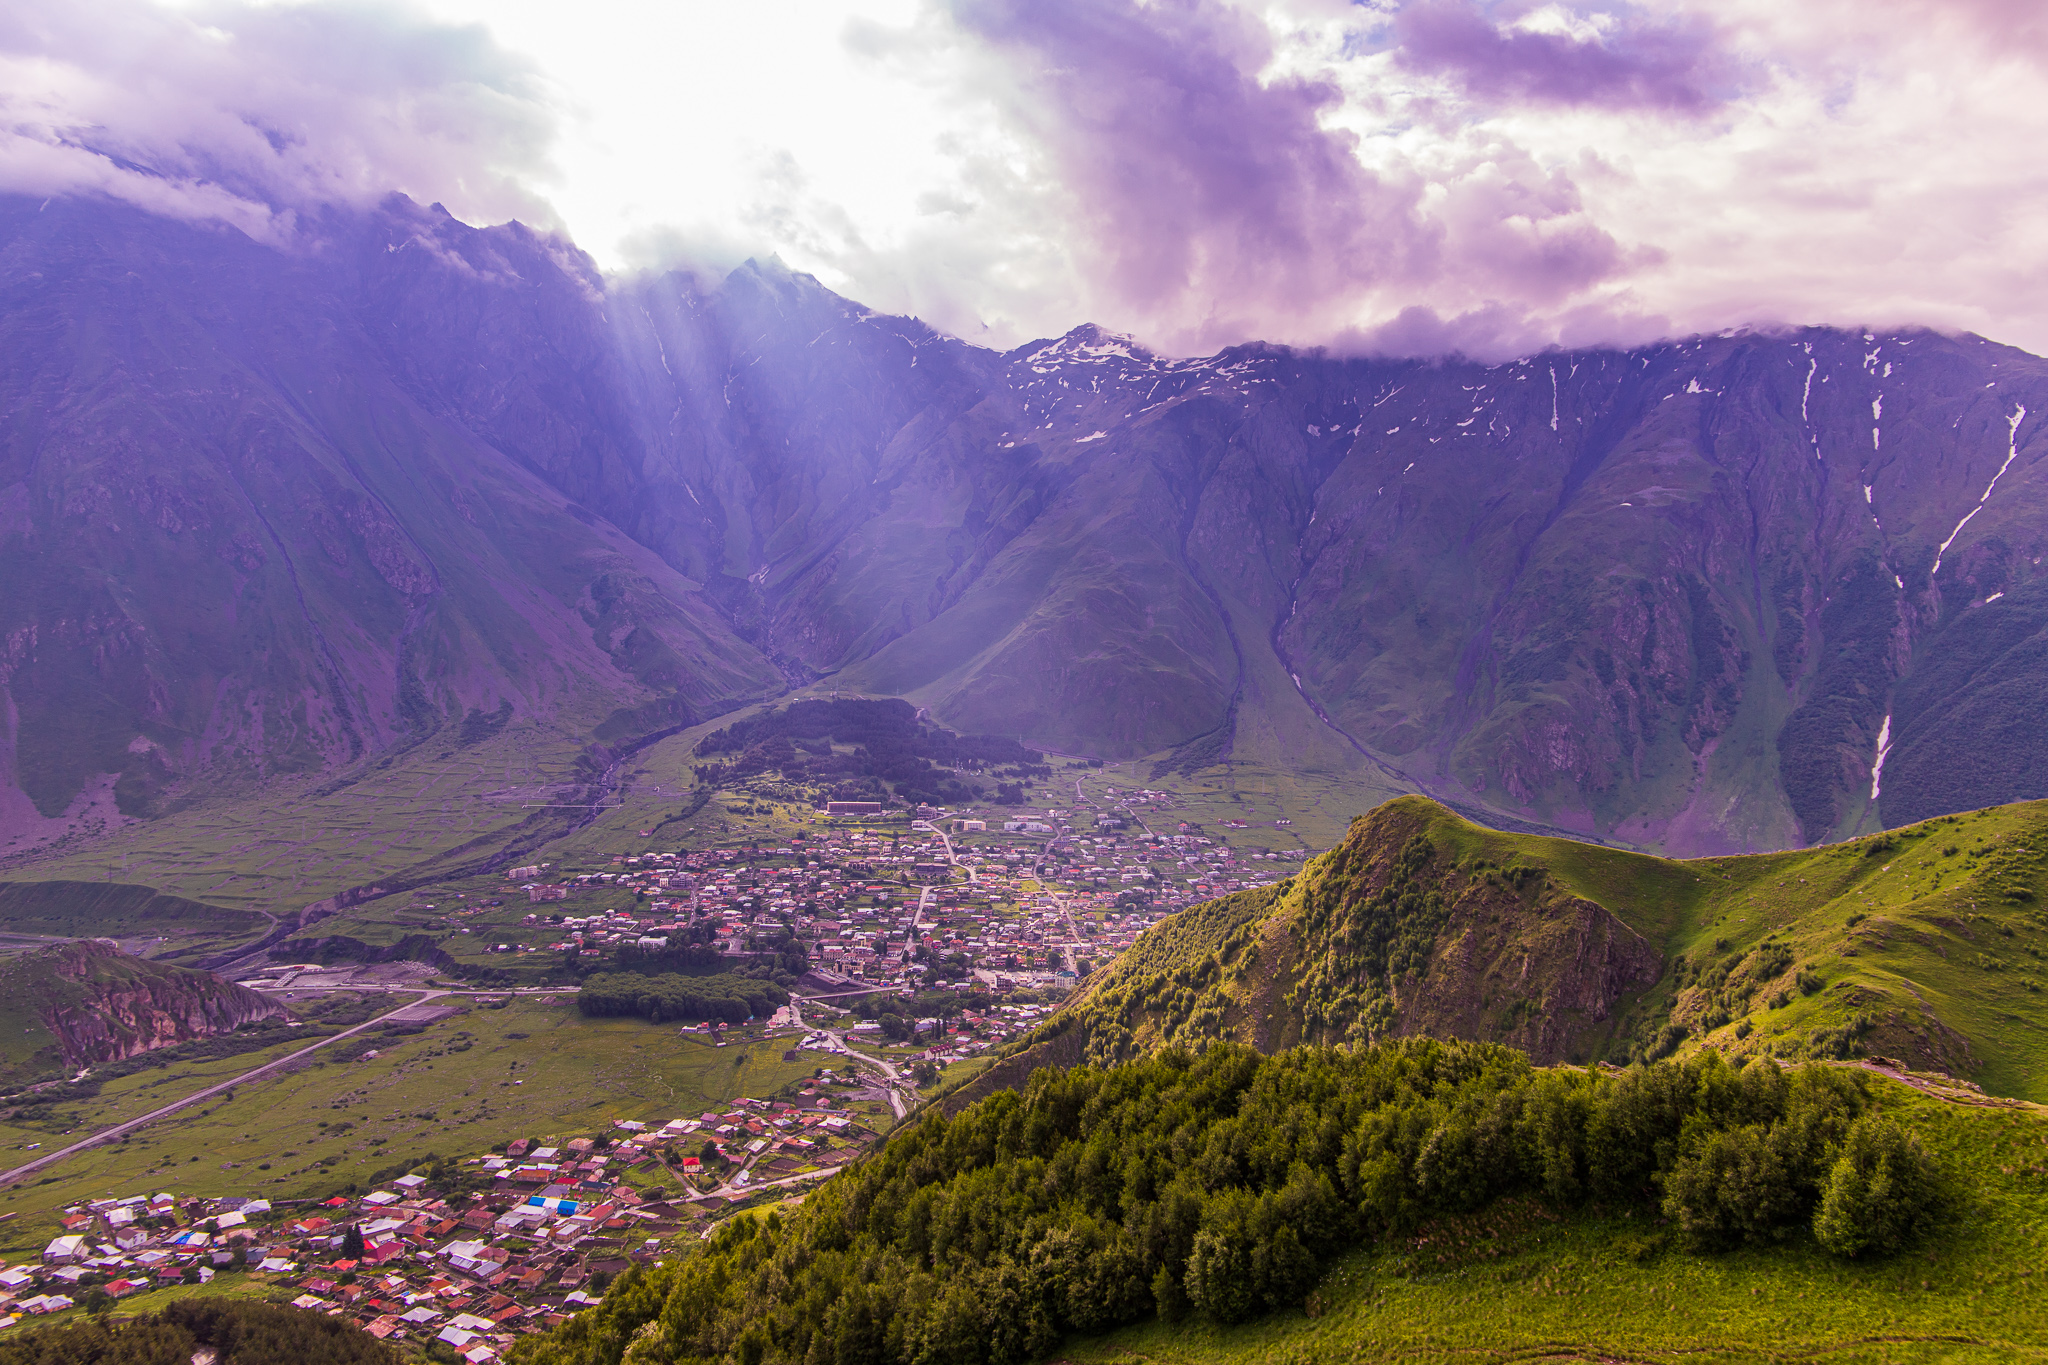 Early morning rays shining down on the town of Stapantsminda